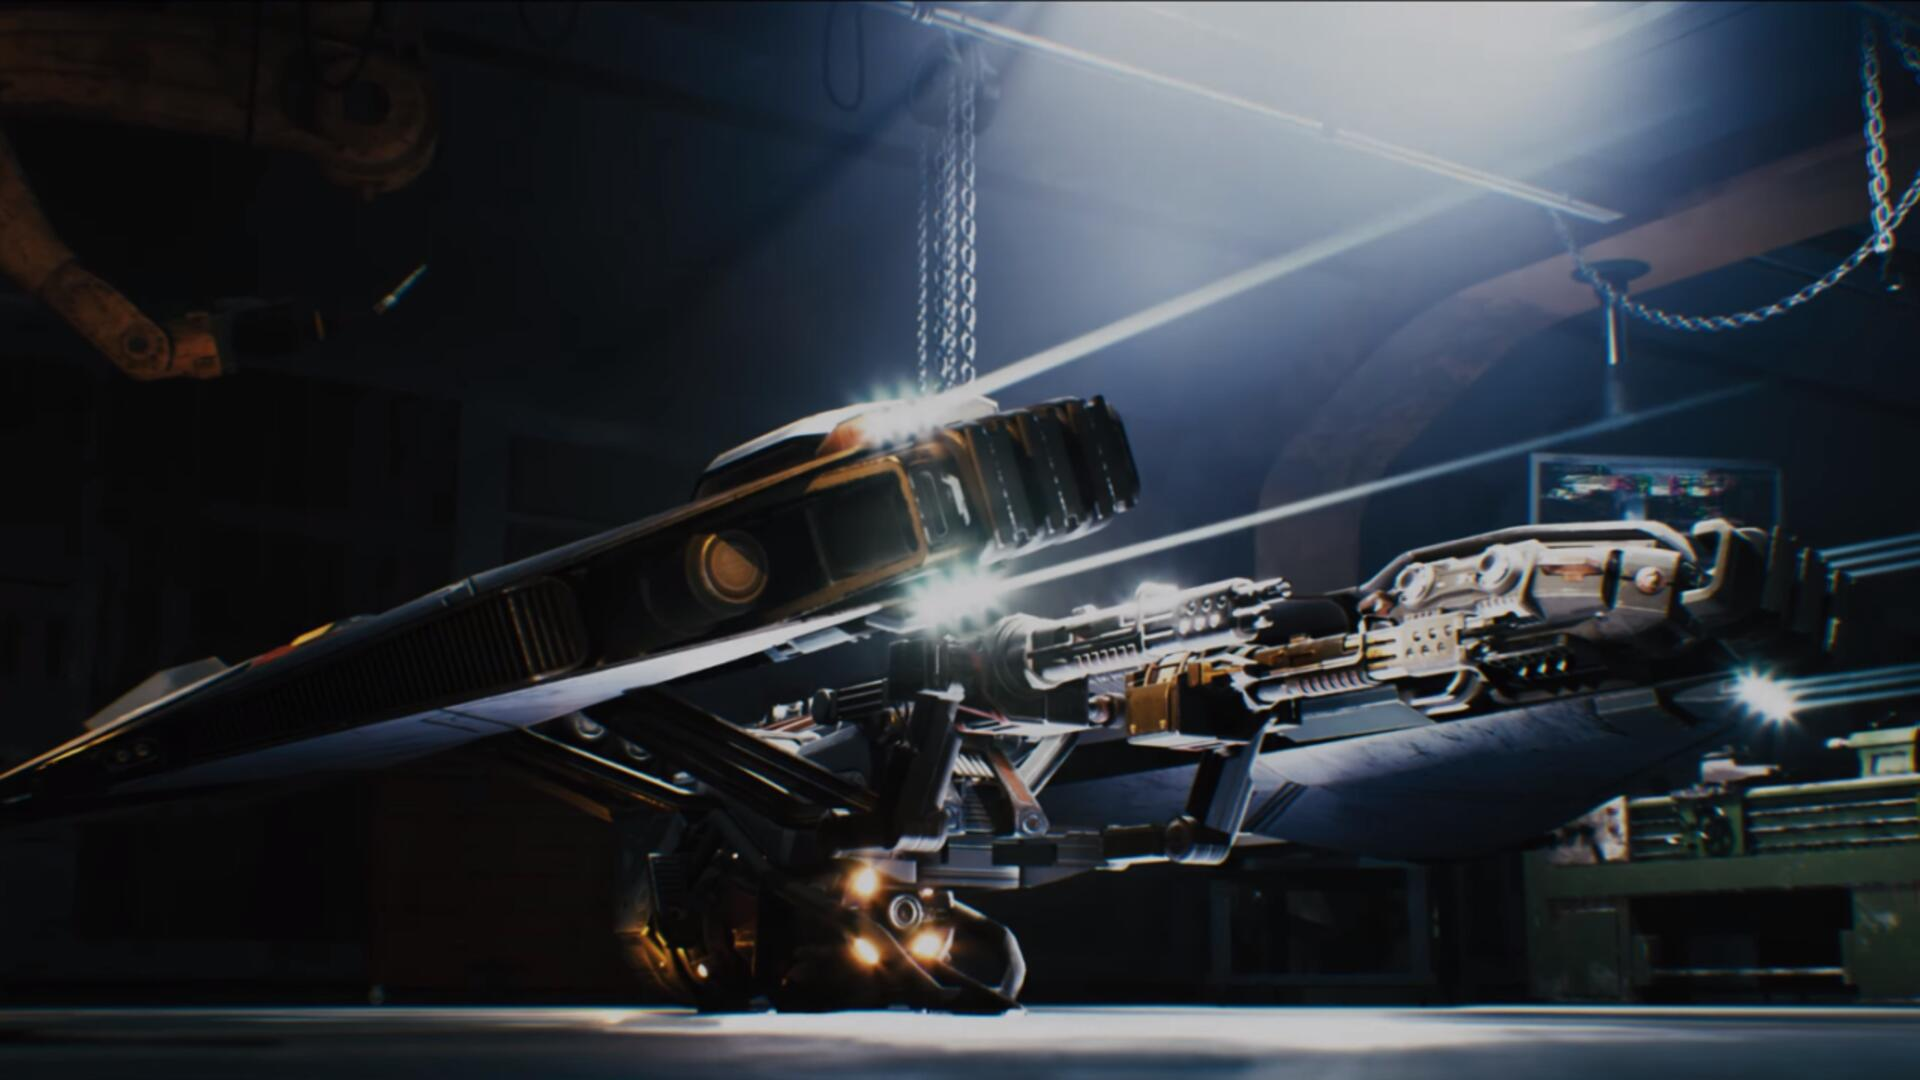 Halo Co-Creator's Studio Teases New Sci-Fi FPS, But Isn't Showing Much Right Now